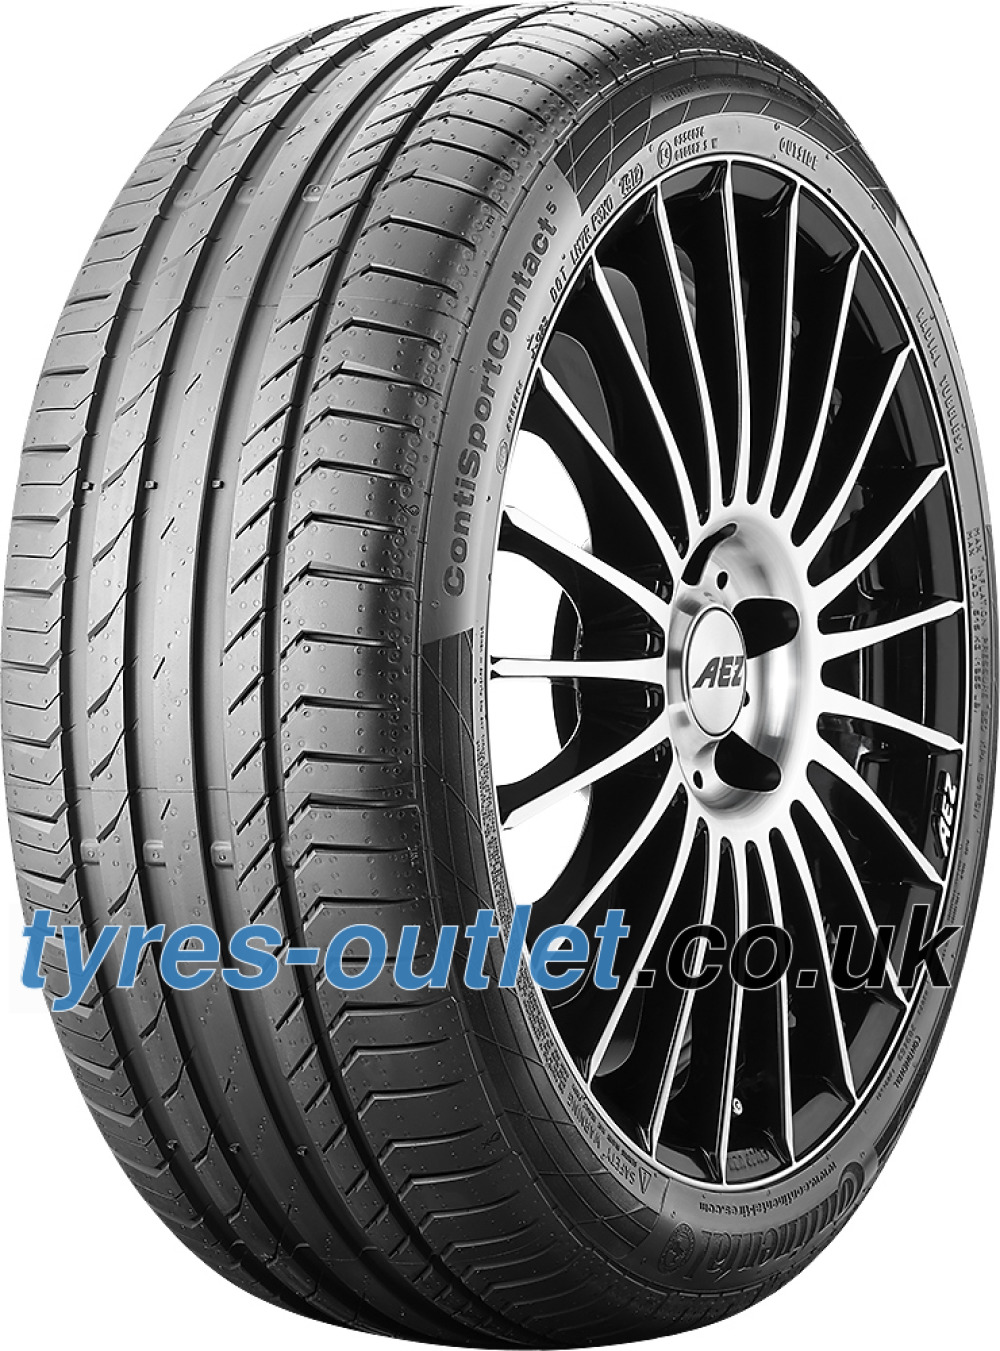 Continental ContiSportContact 5 ( 255/45 R18 103H XL with kerbing rib )